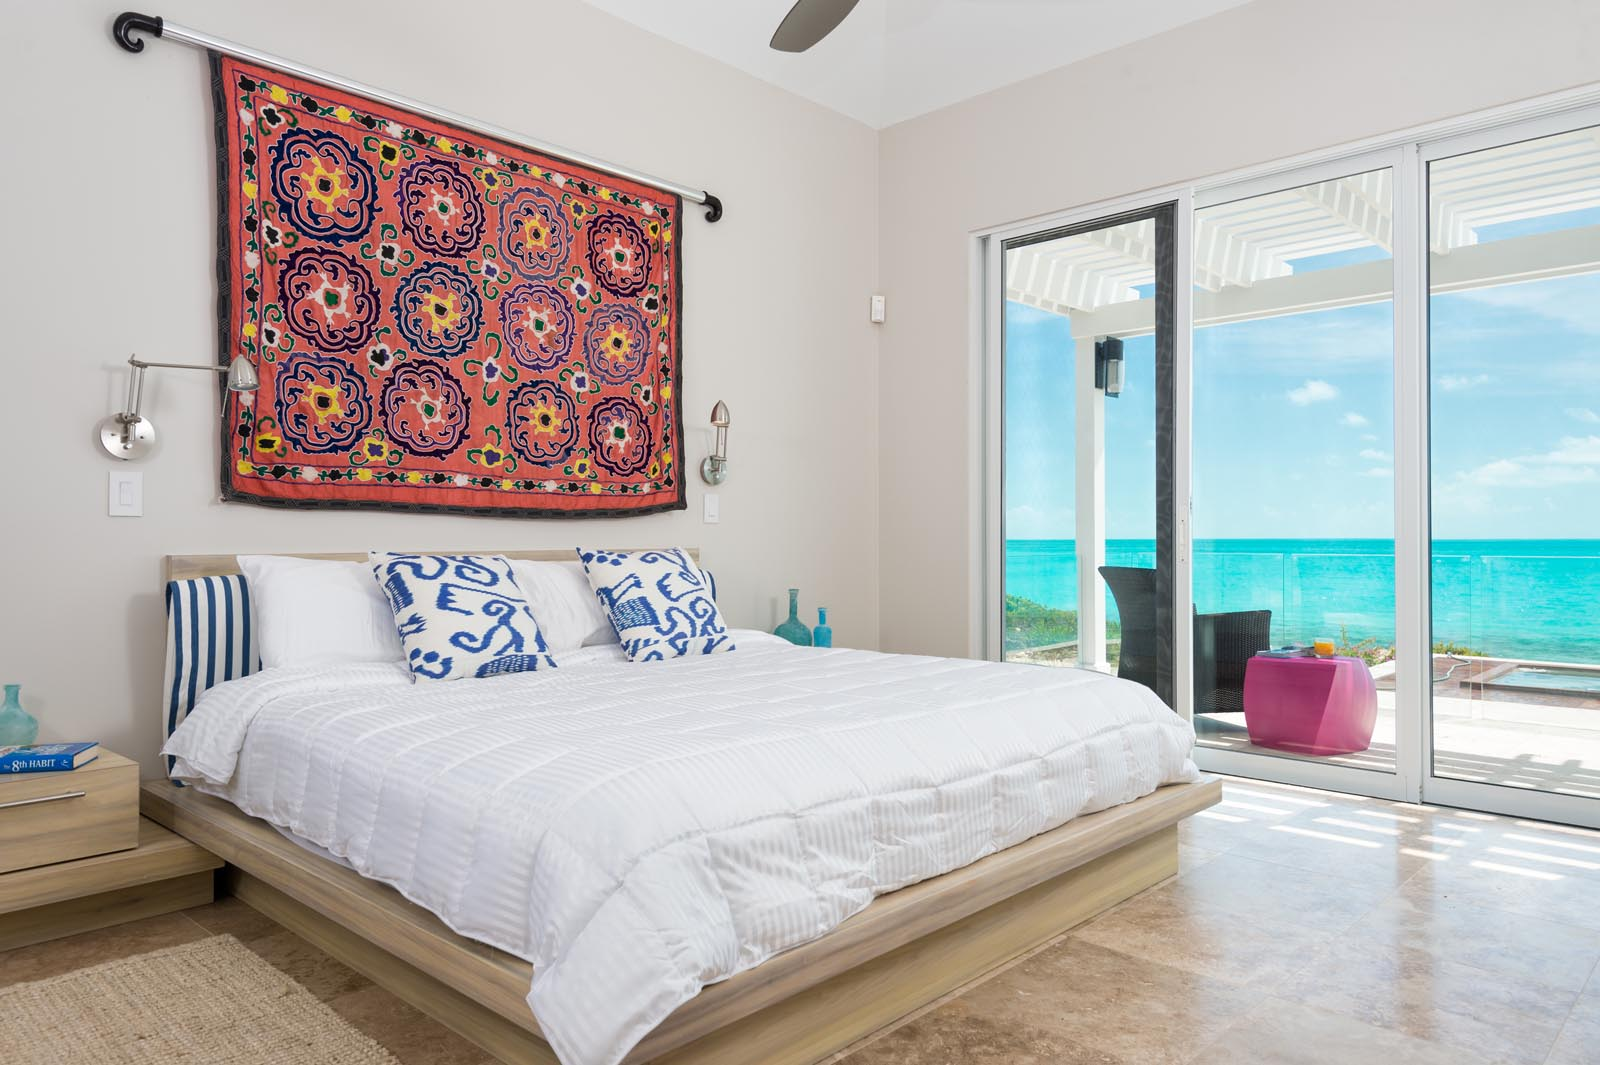 Each of the large bedrooms of this Turks and Caicos luxury villa has a queen sized bed